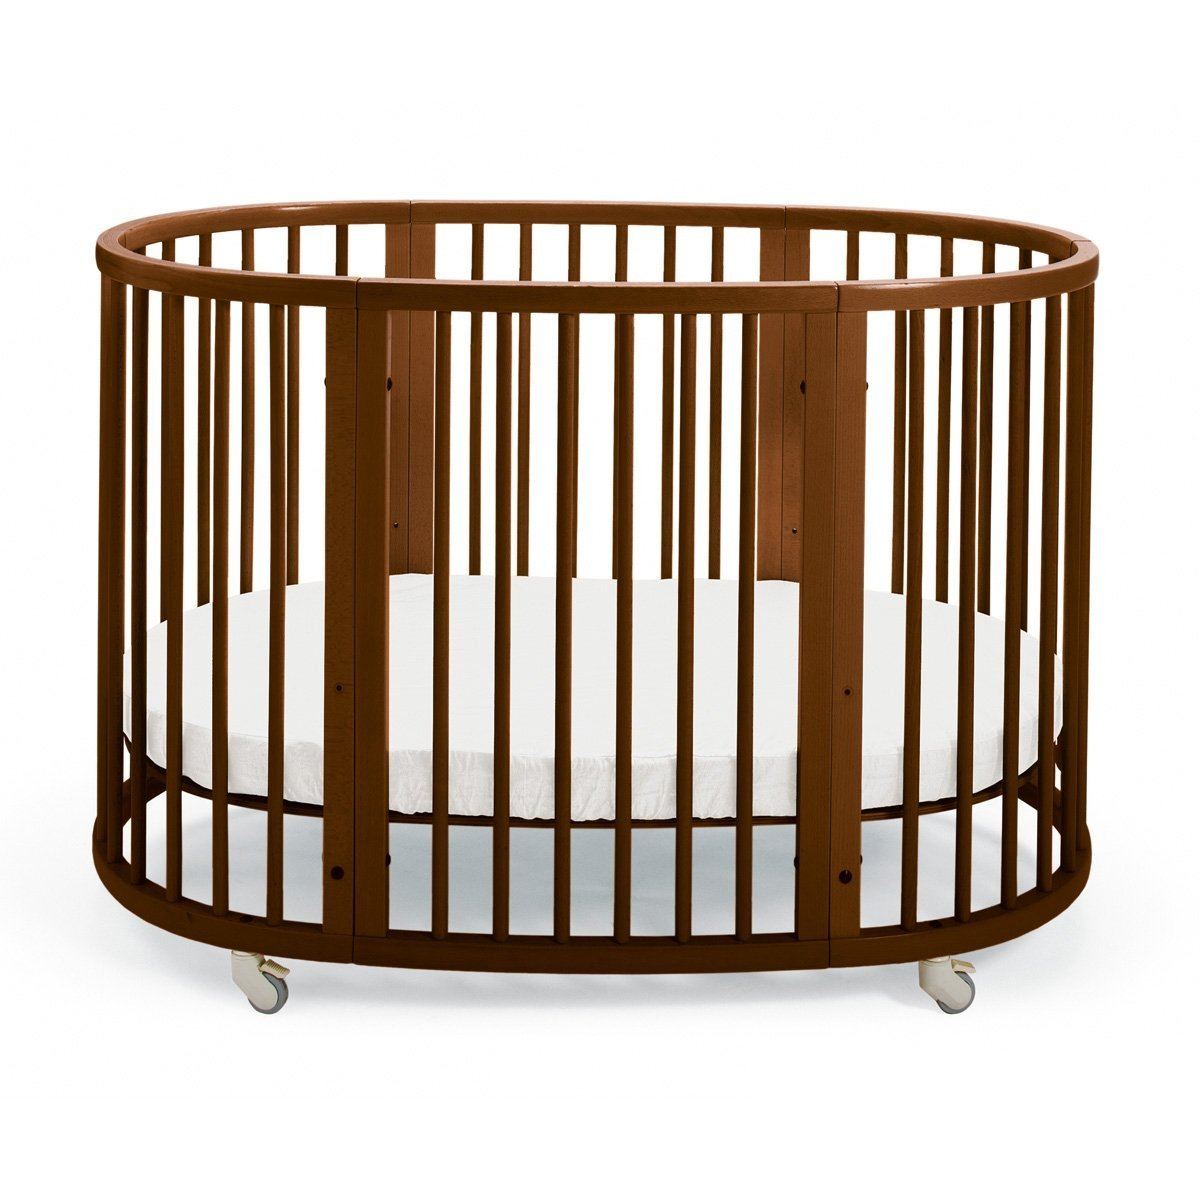 Top 4 Affordable & Eco Friendly Cribs for Baby Under $800